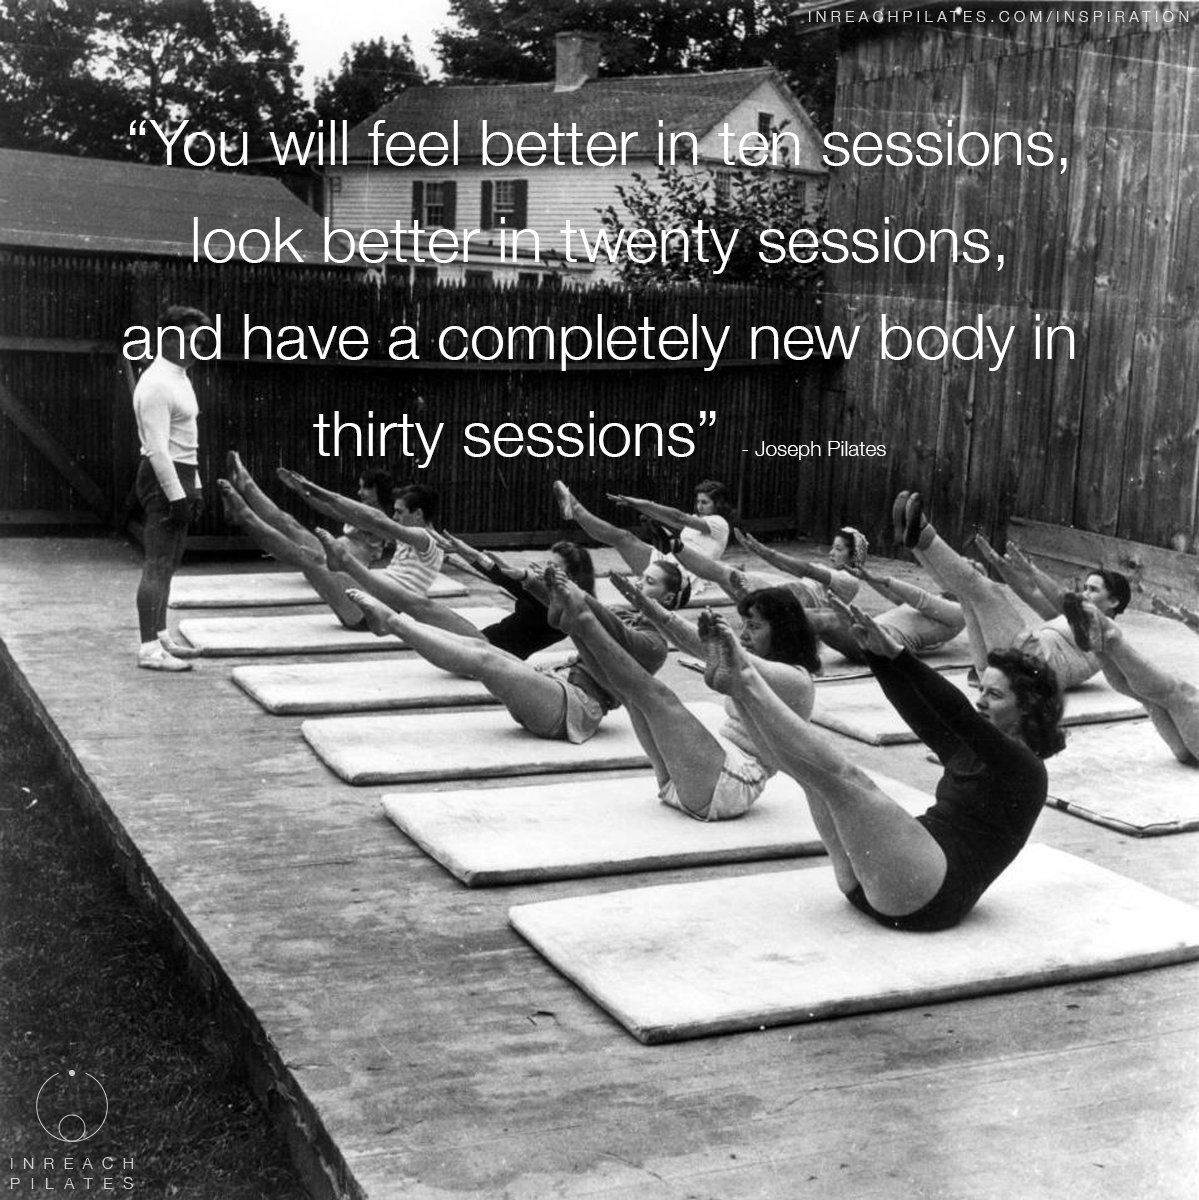 Joseph Pilates quote - Feel better in ten sessions